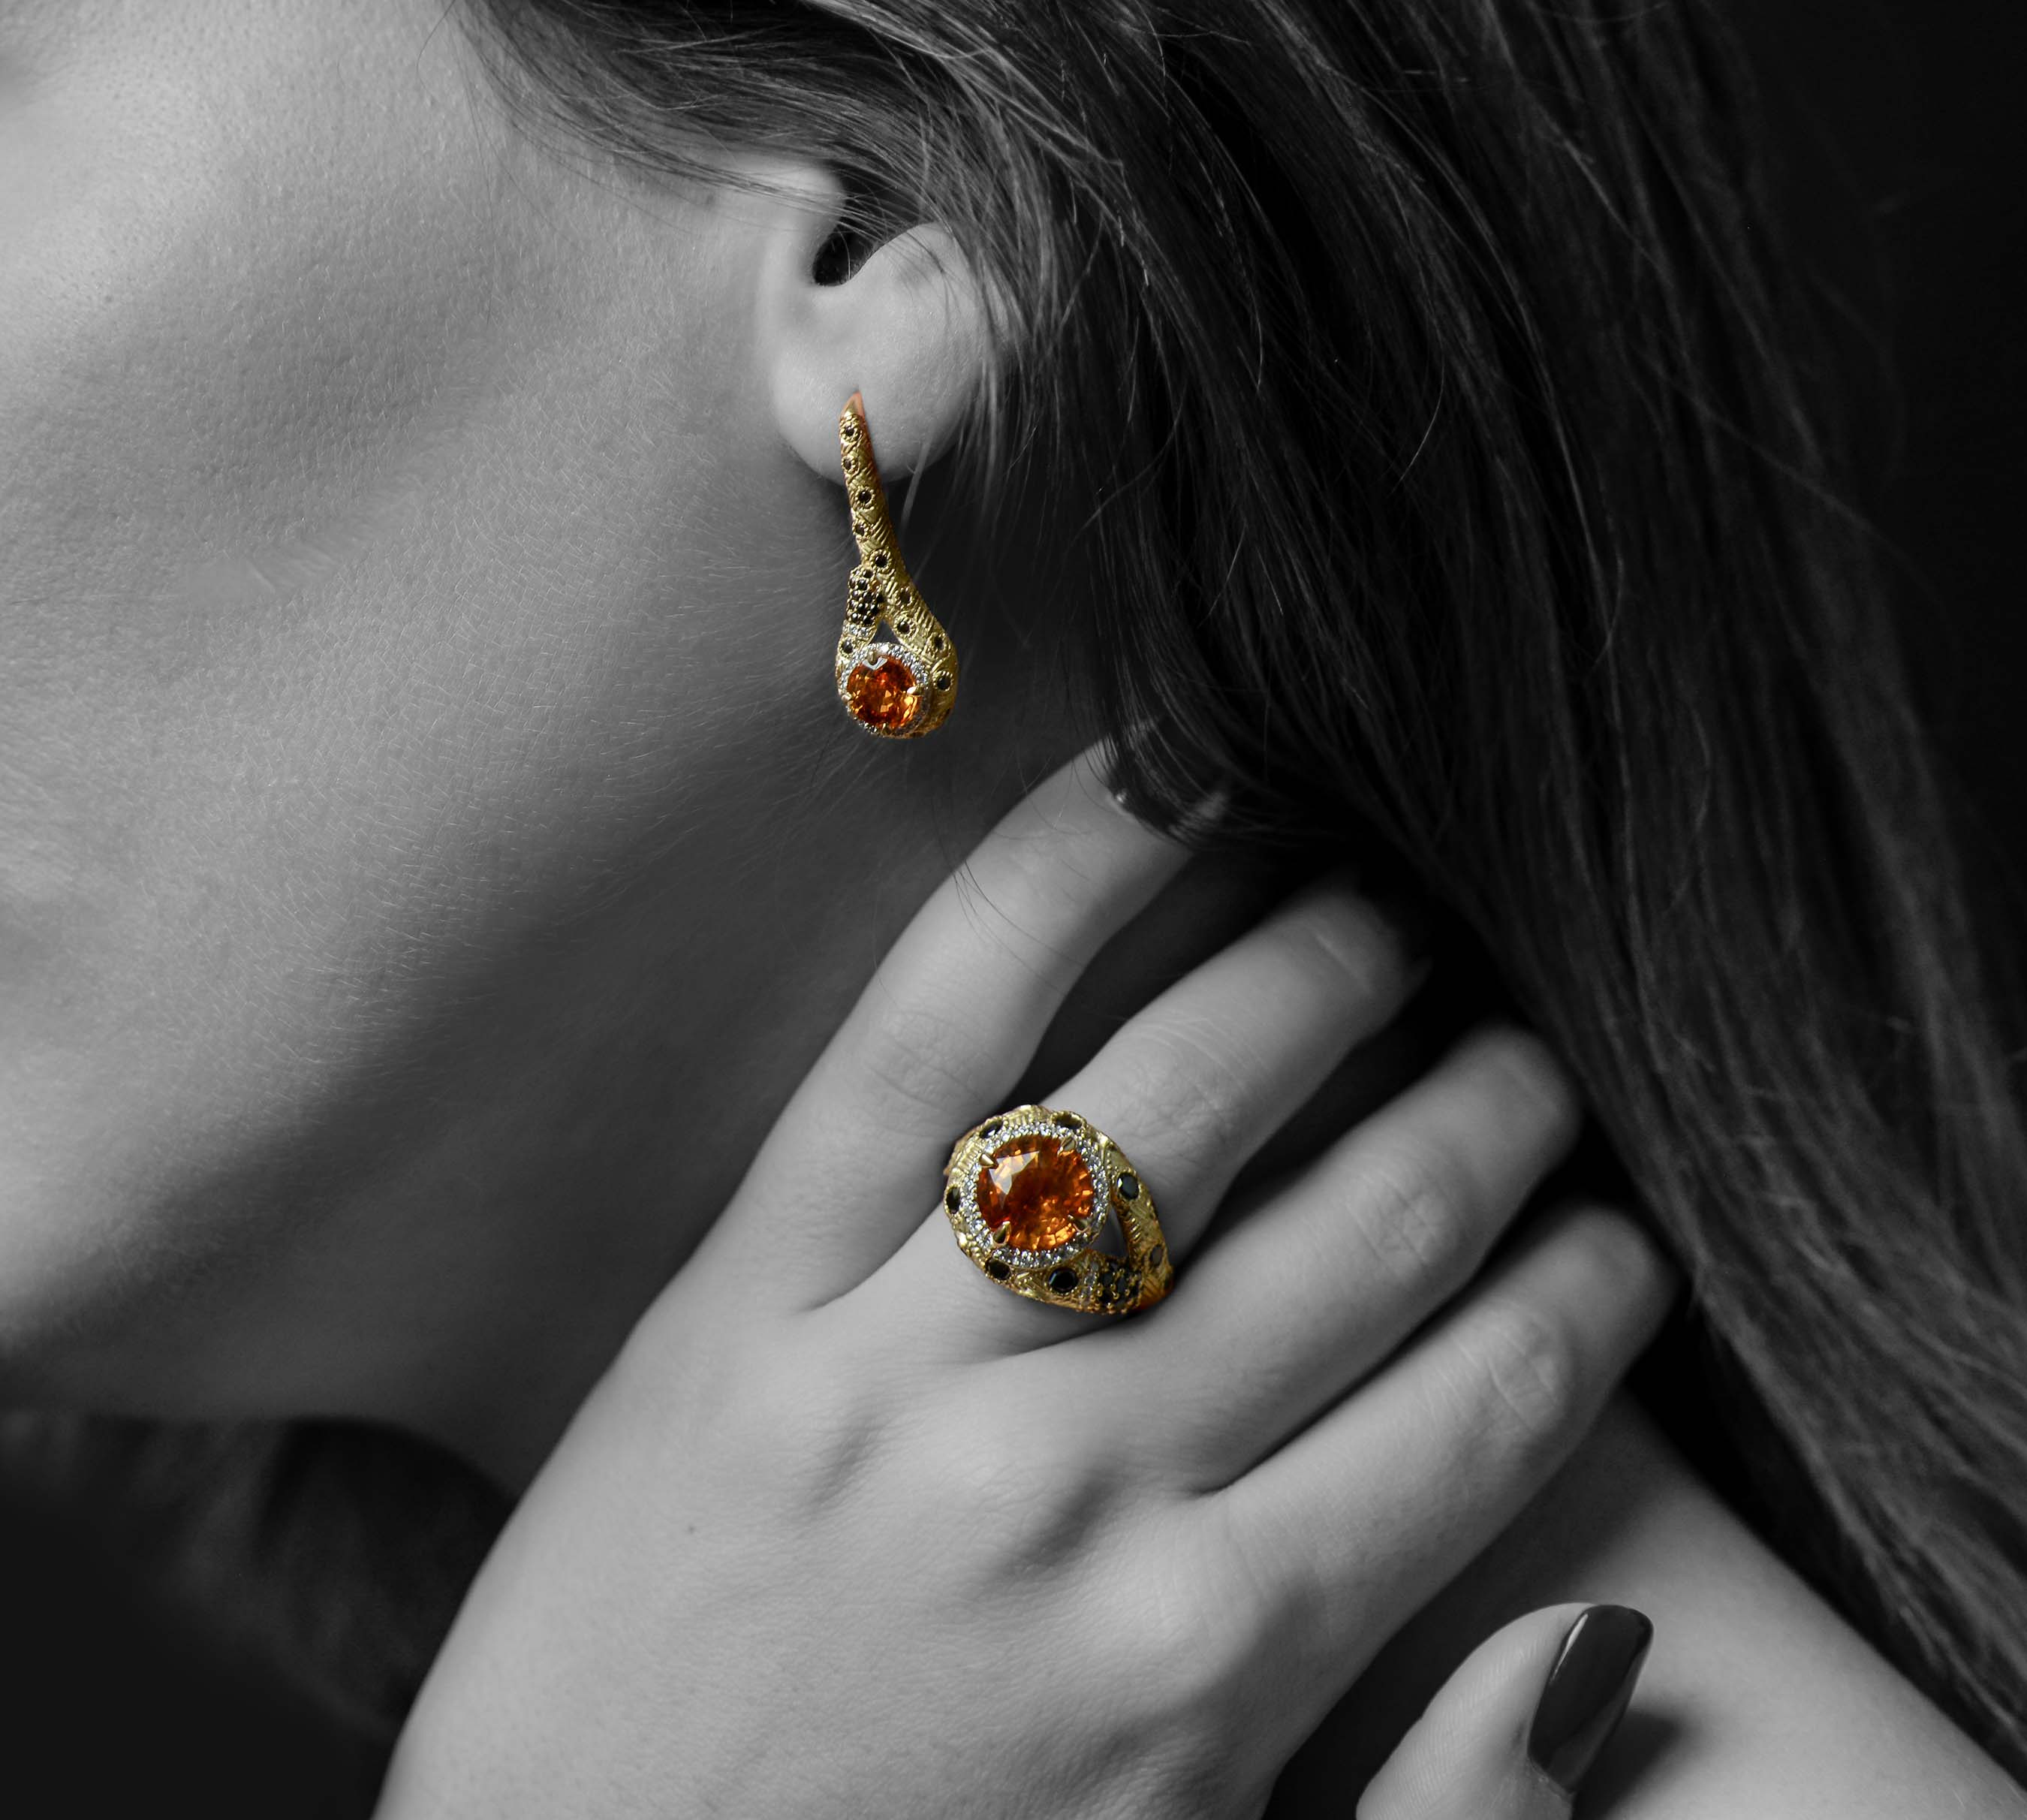 The dazzling Eye of the Cheetah 18k yellow gold ring boasts a magnificent 4.7 carat orange sapphire, and these one-of-a-kind pieces are adorned in more than 190 black and white diamonds. $20,000.00